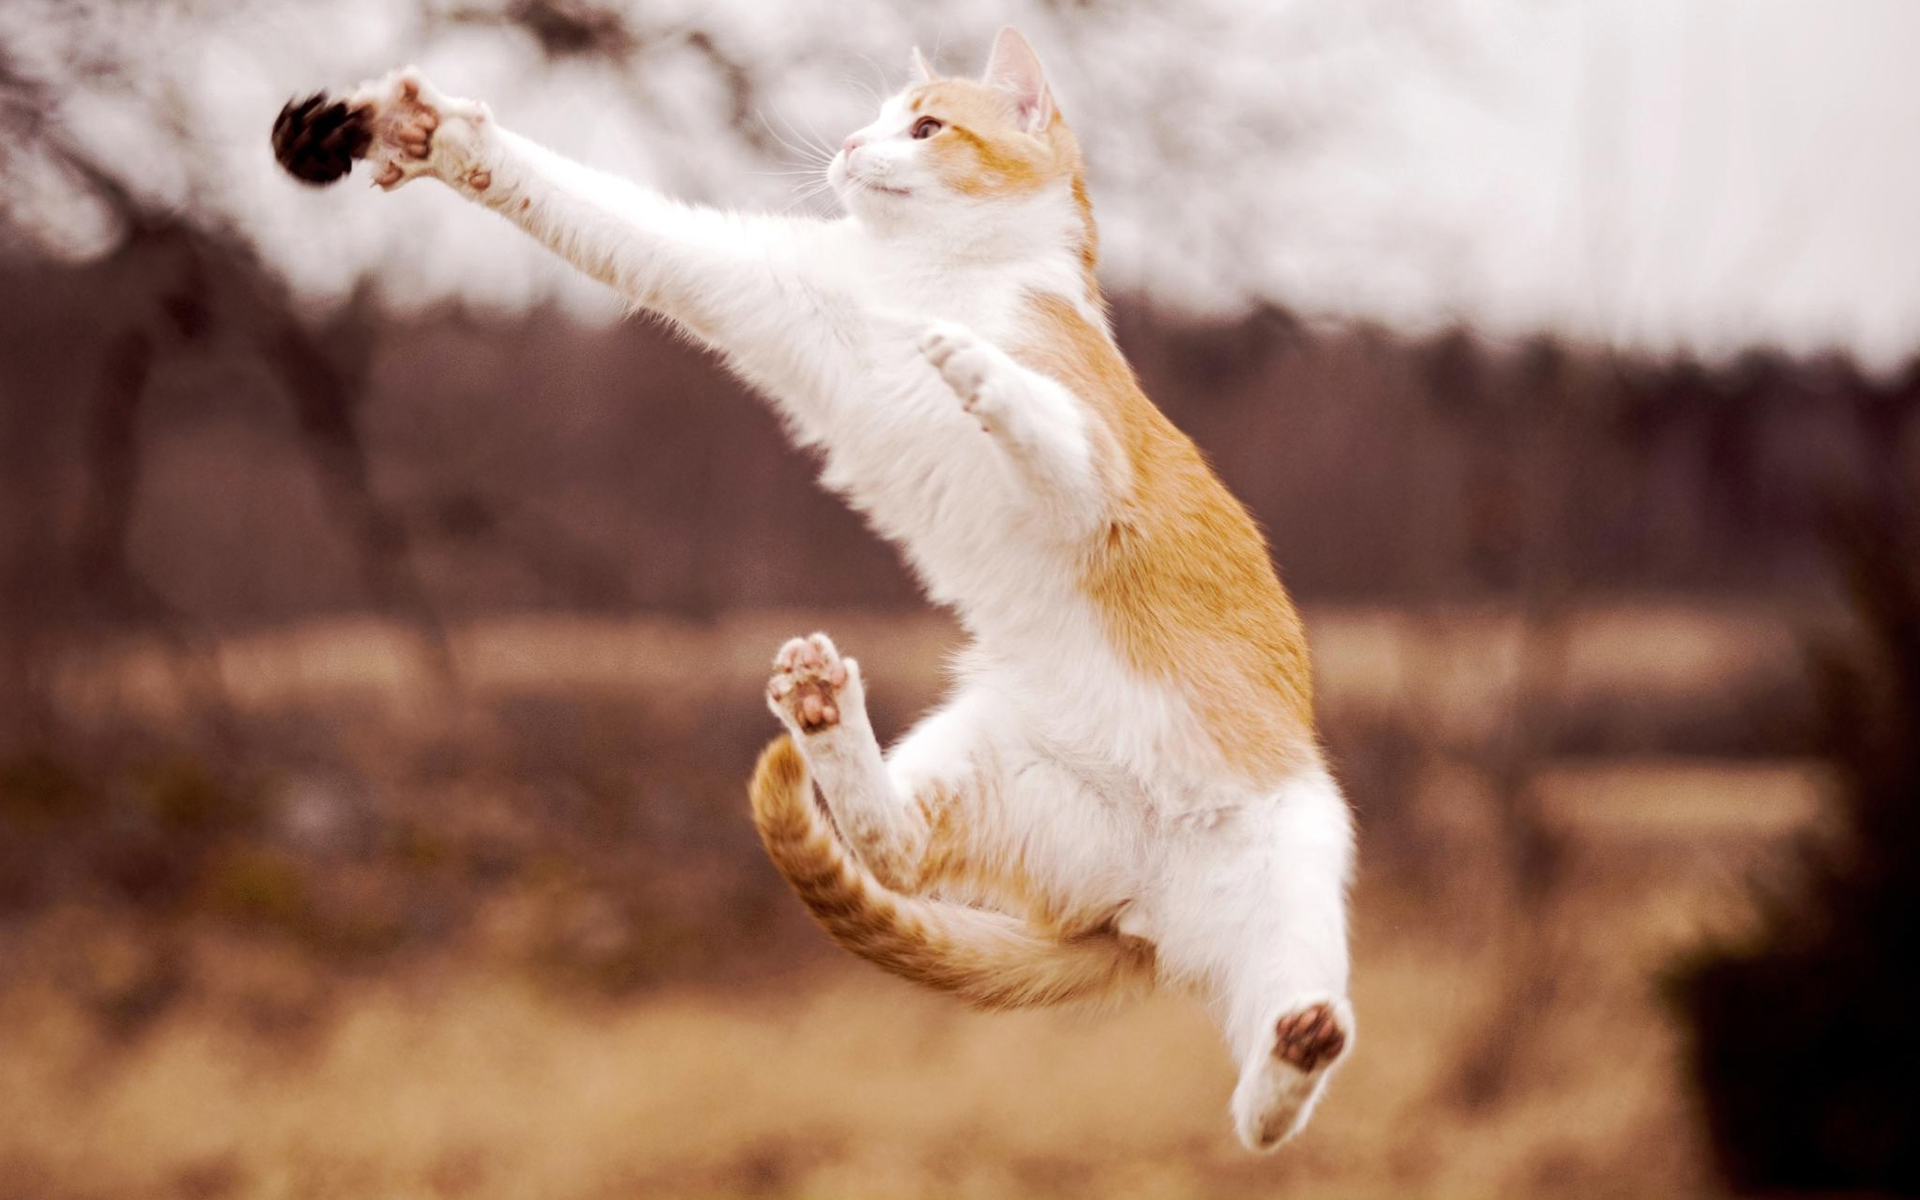 Cat jump catch